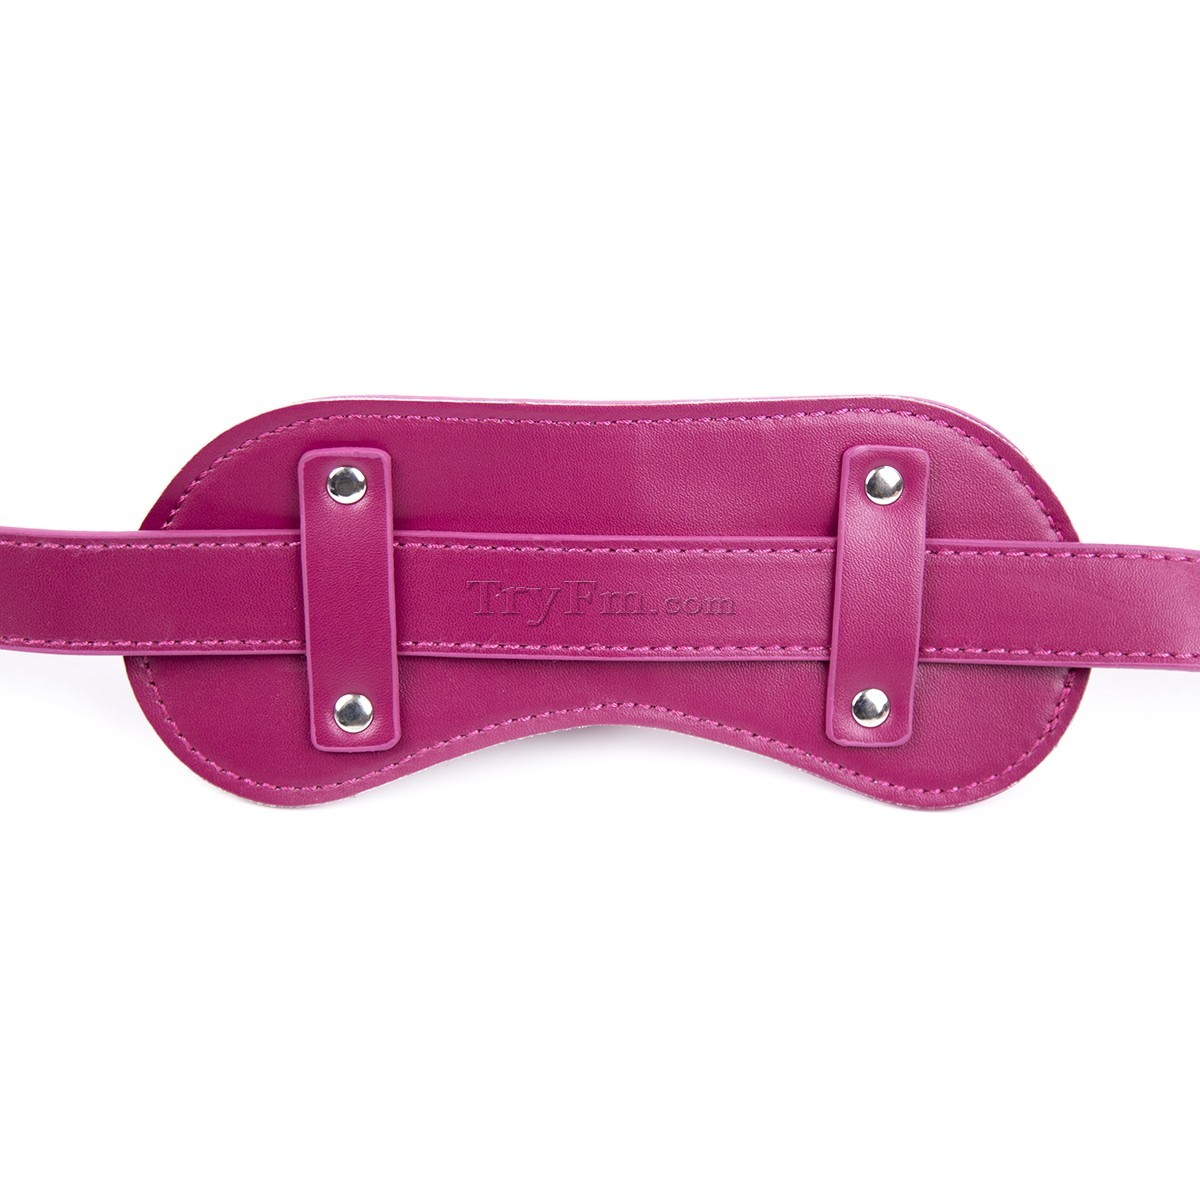 25-Leather-Locking-Ball-Gag-1.jpg